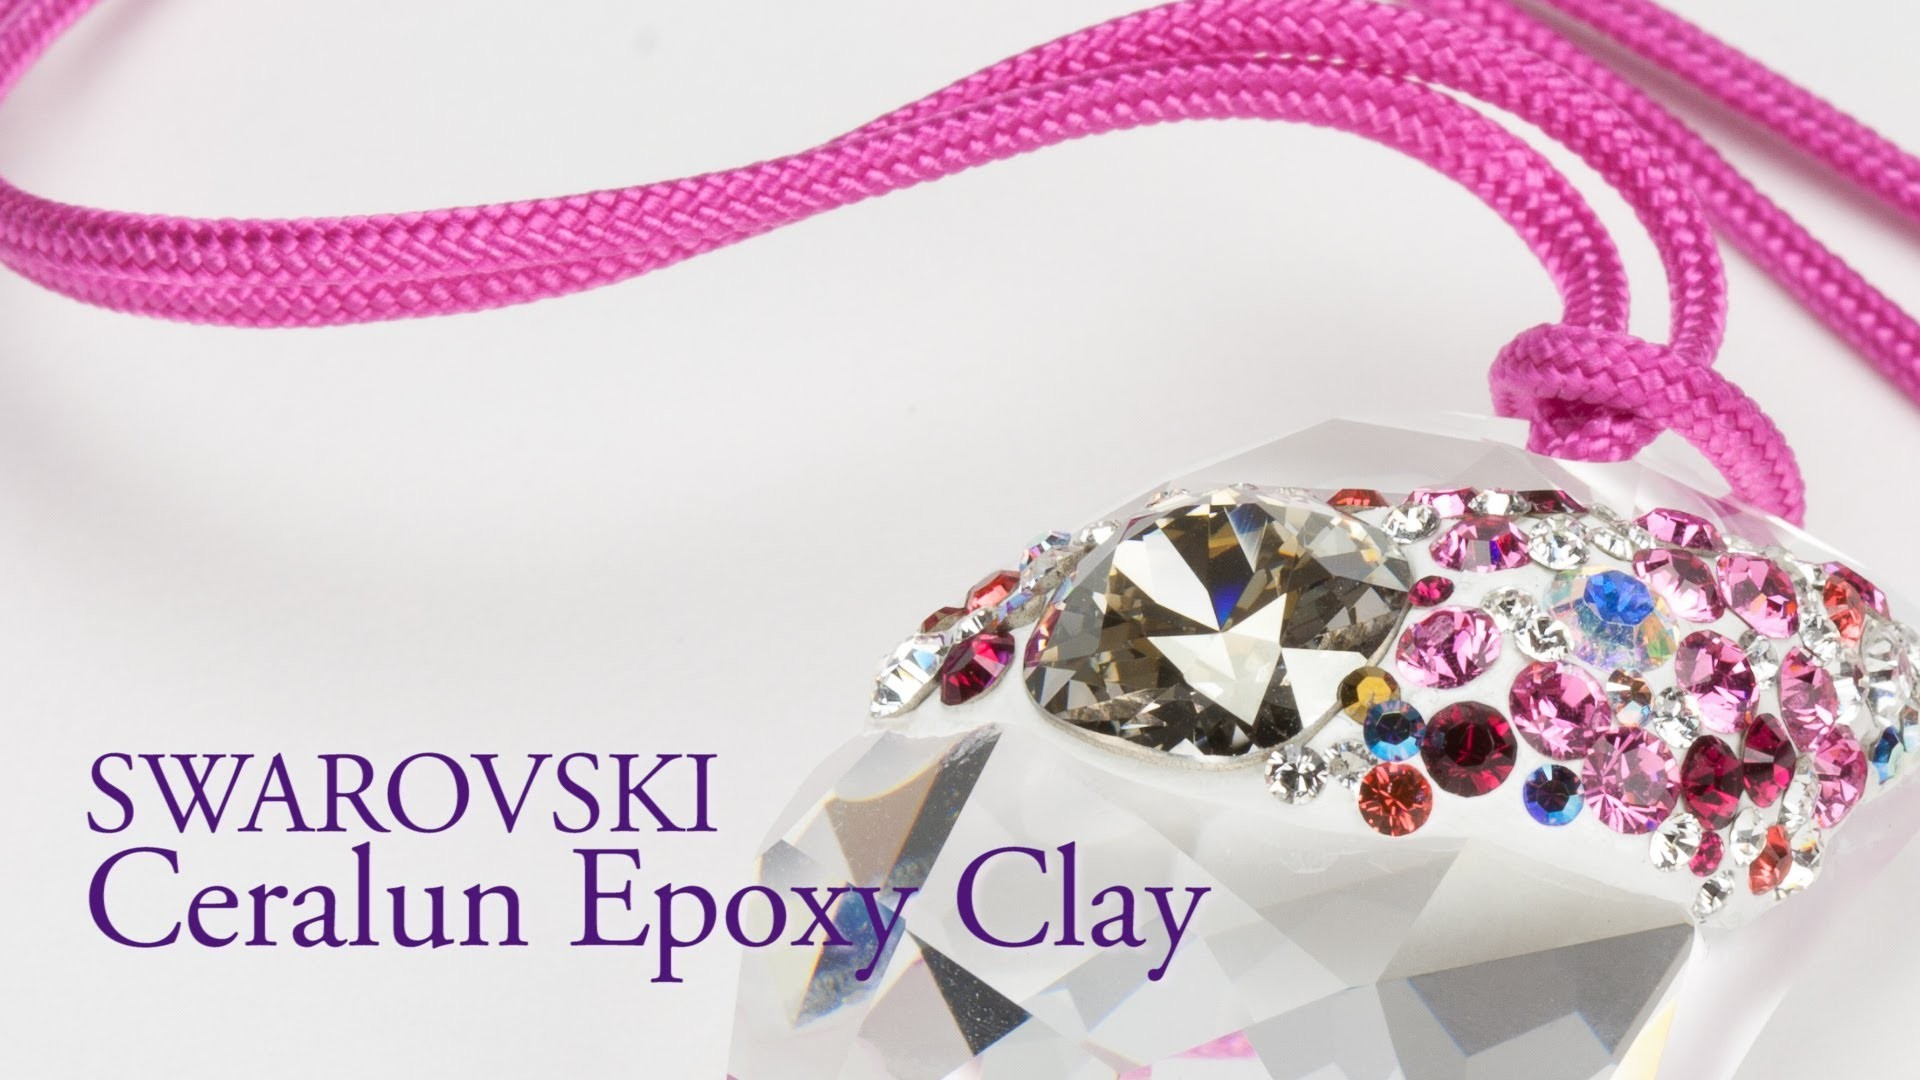 Artbeads Mini Tutorial - Swarovski Ceralun Epoxy Clay with Nick Regine